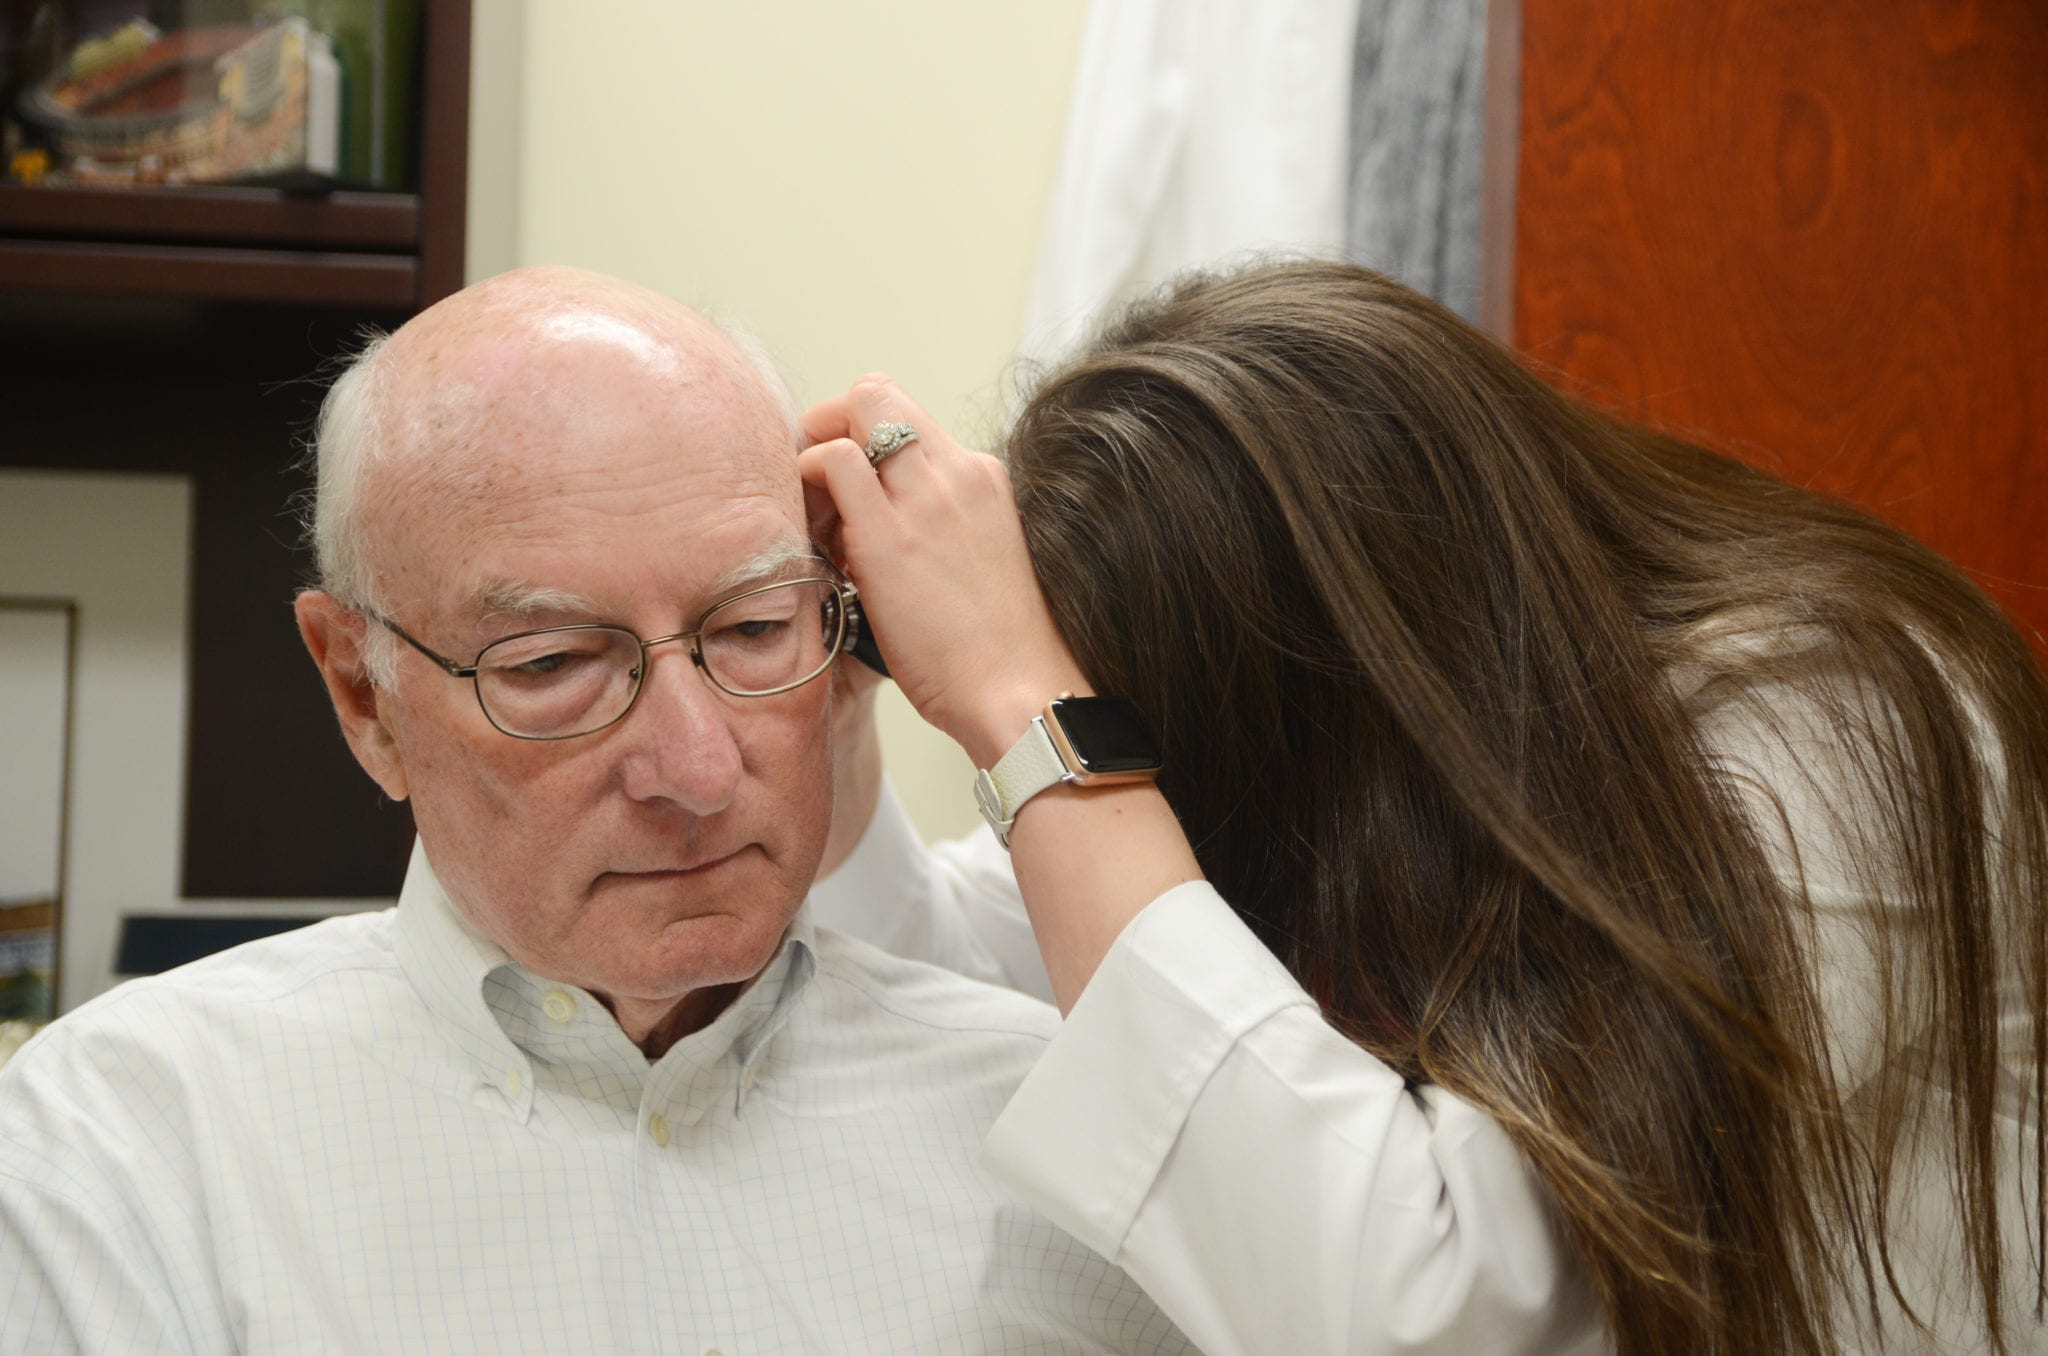 Man during hearing aid fitting